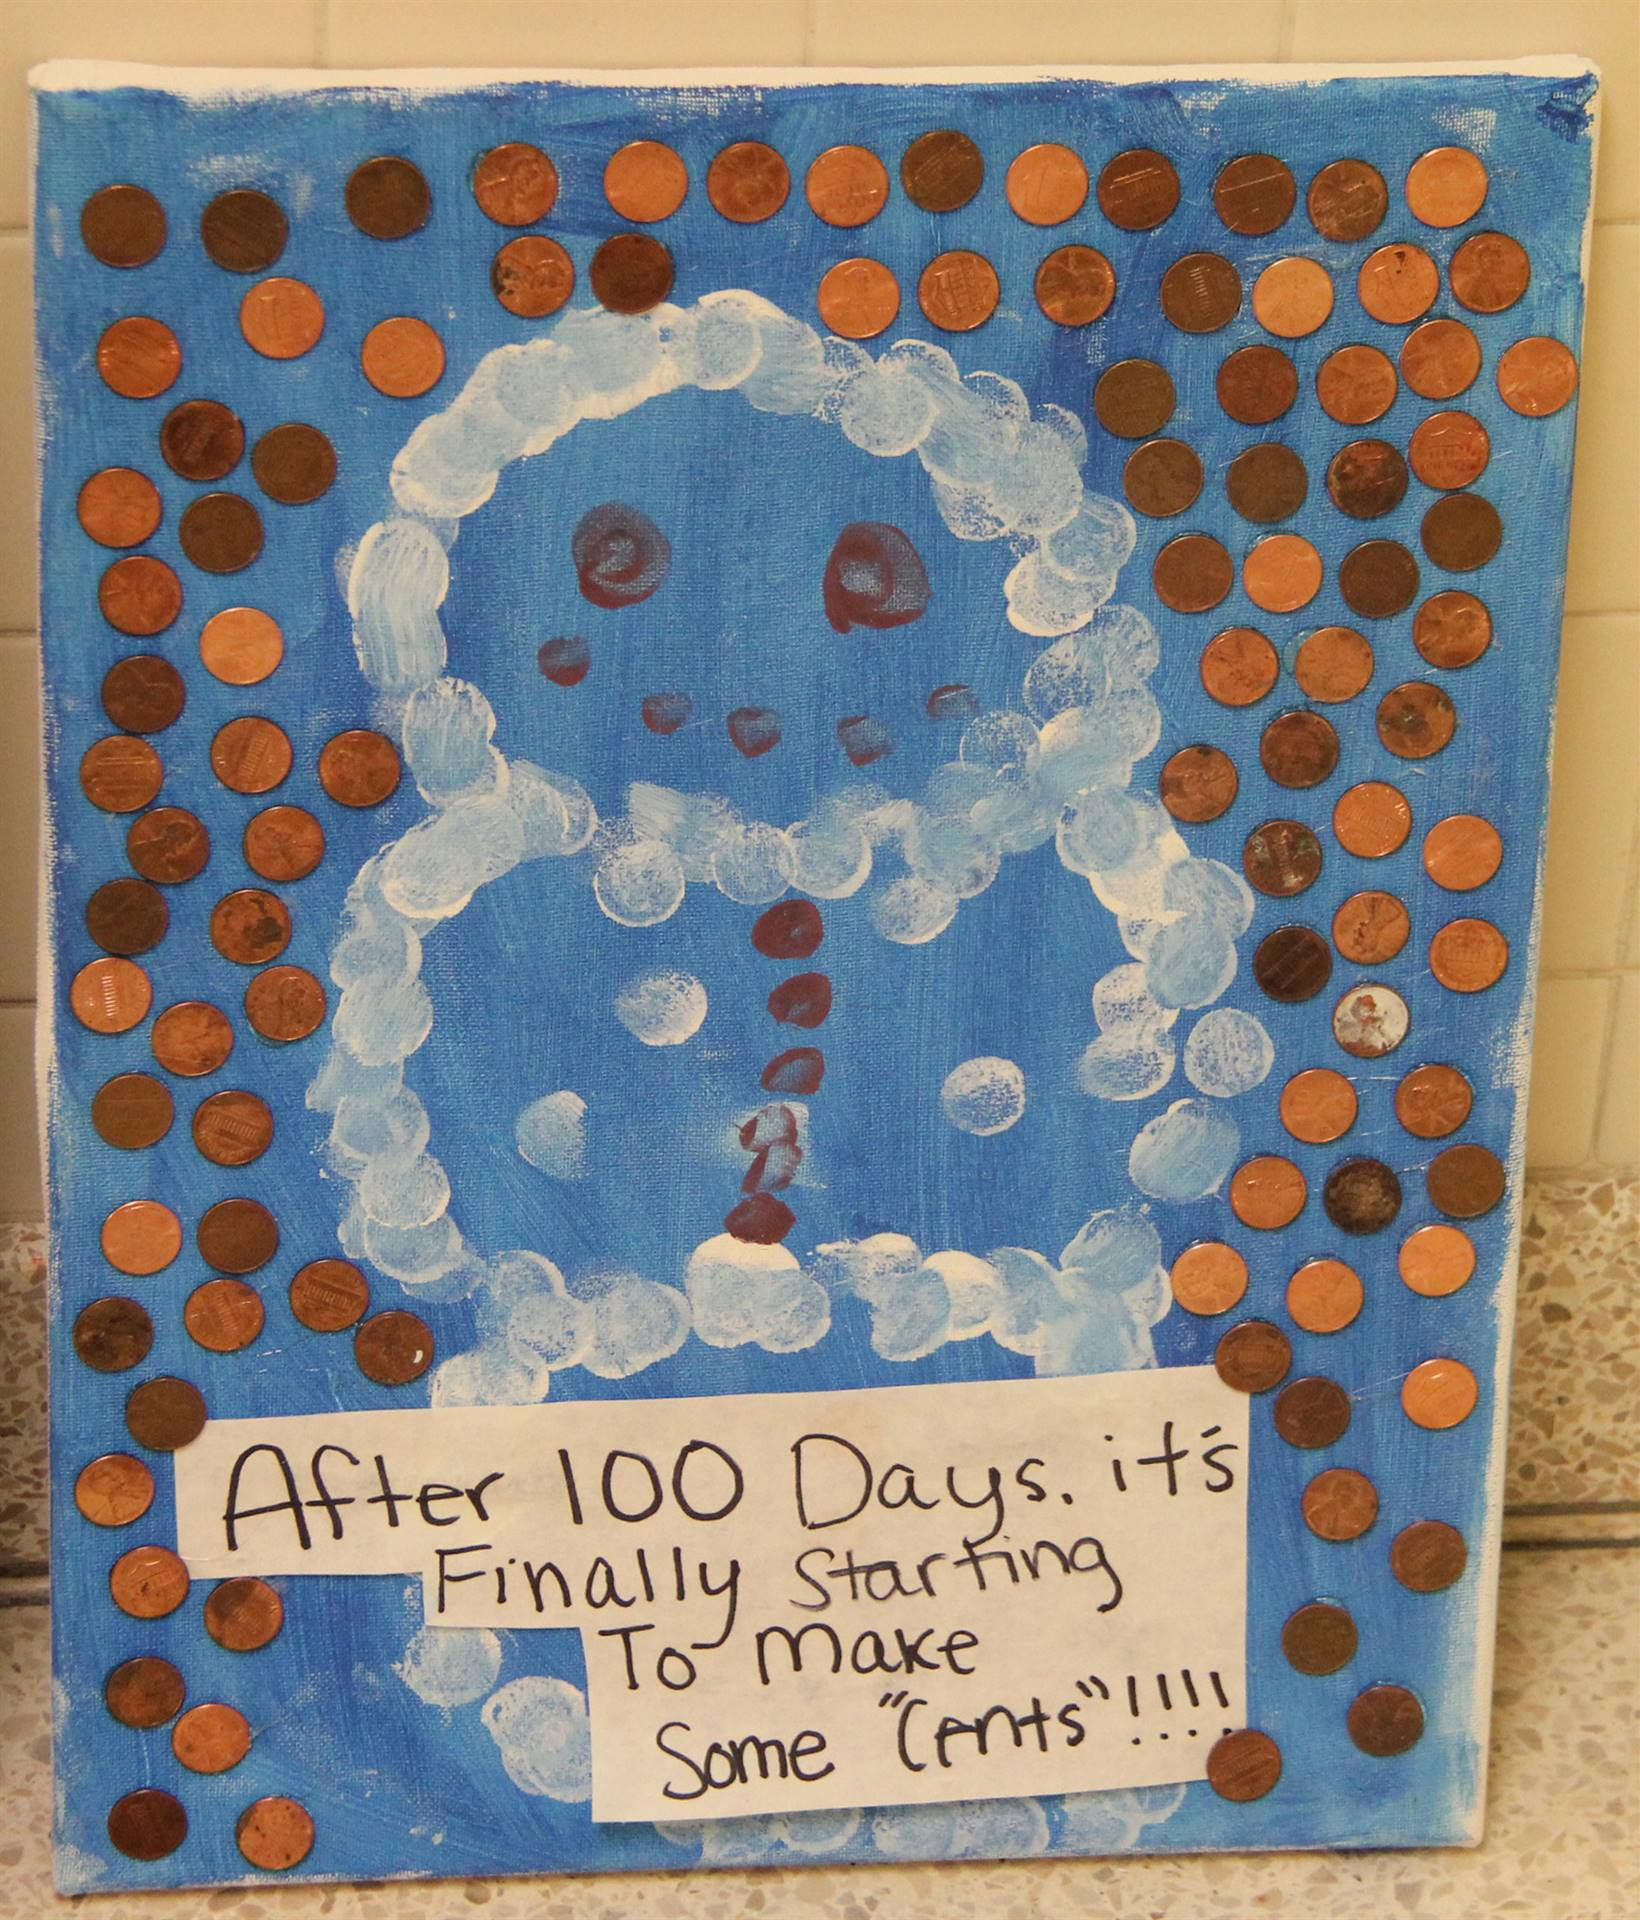 another 100 days of school poster